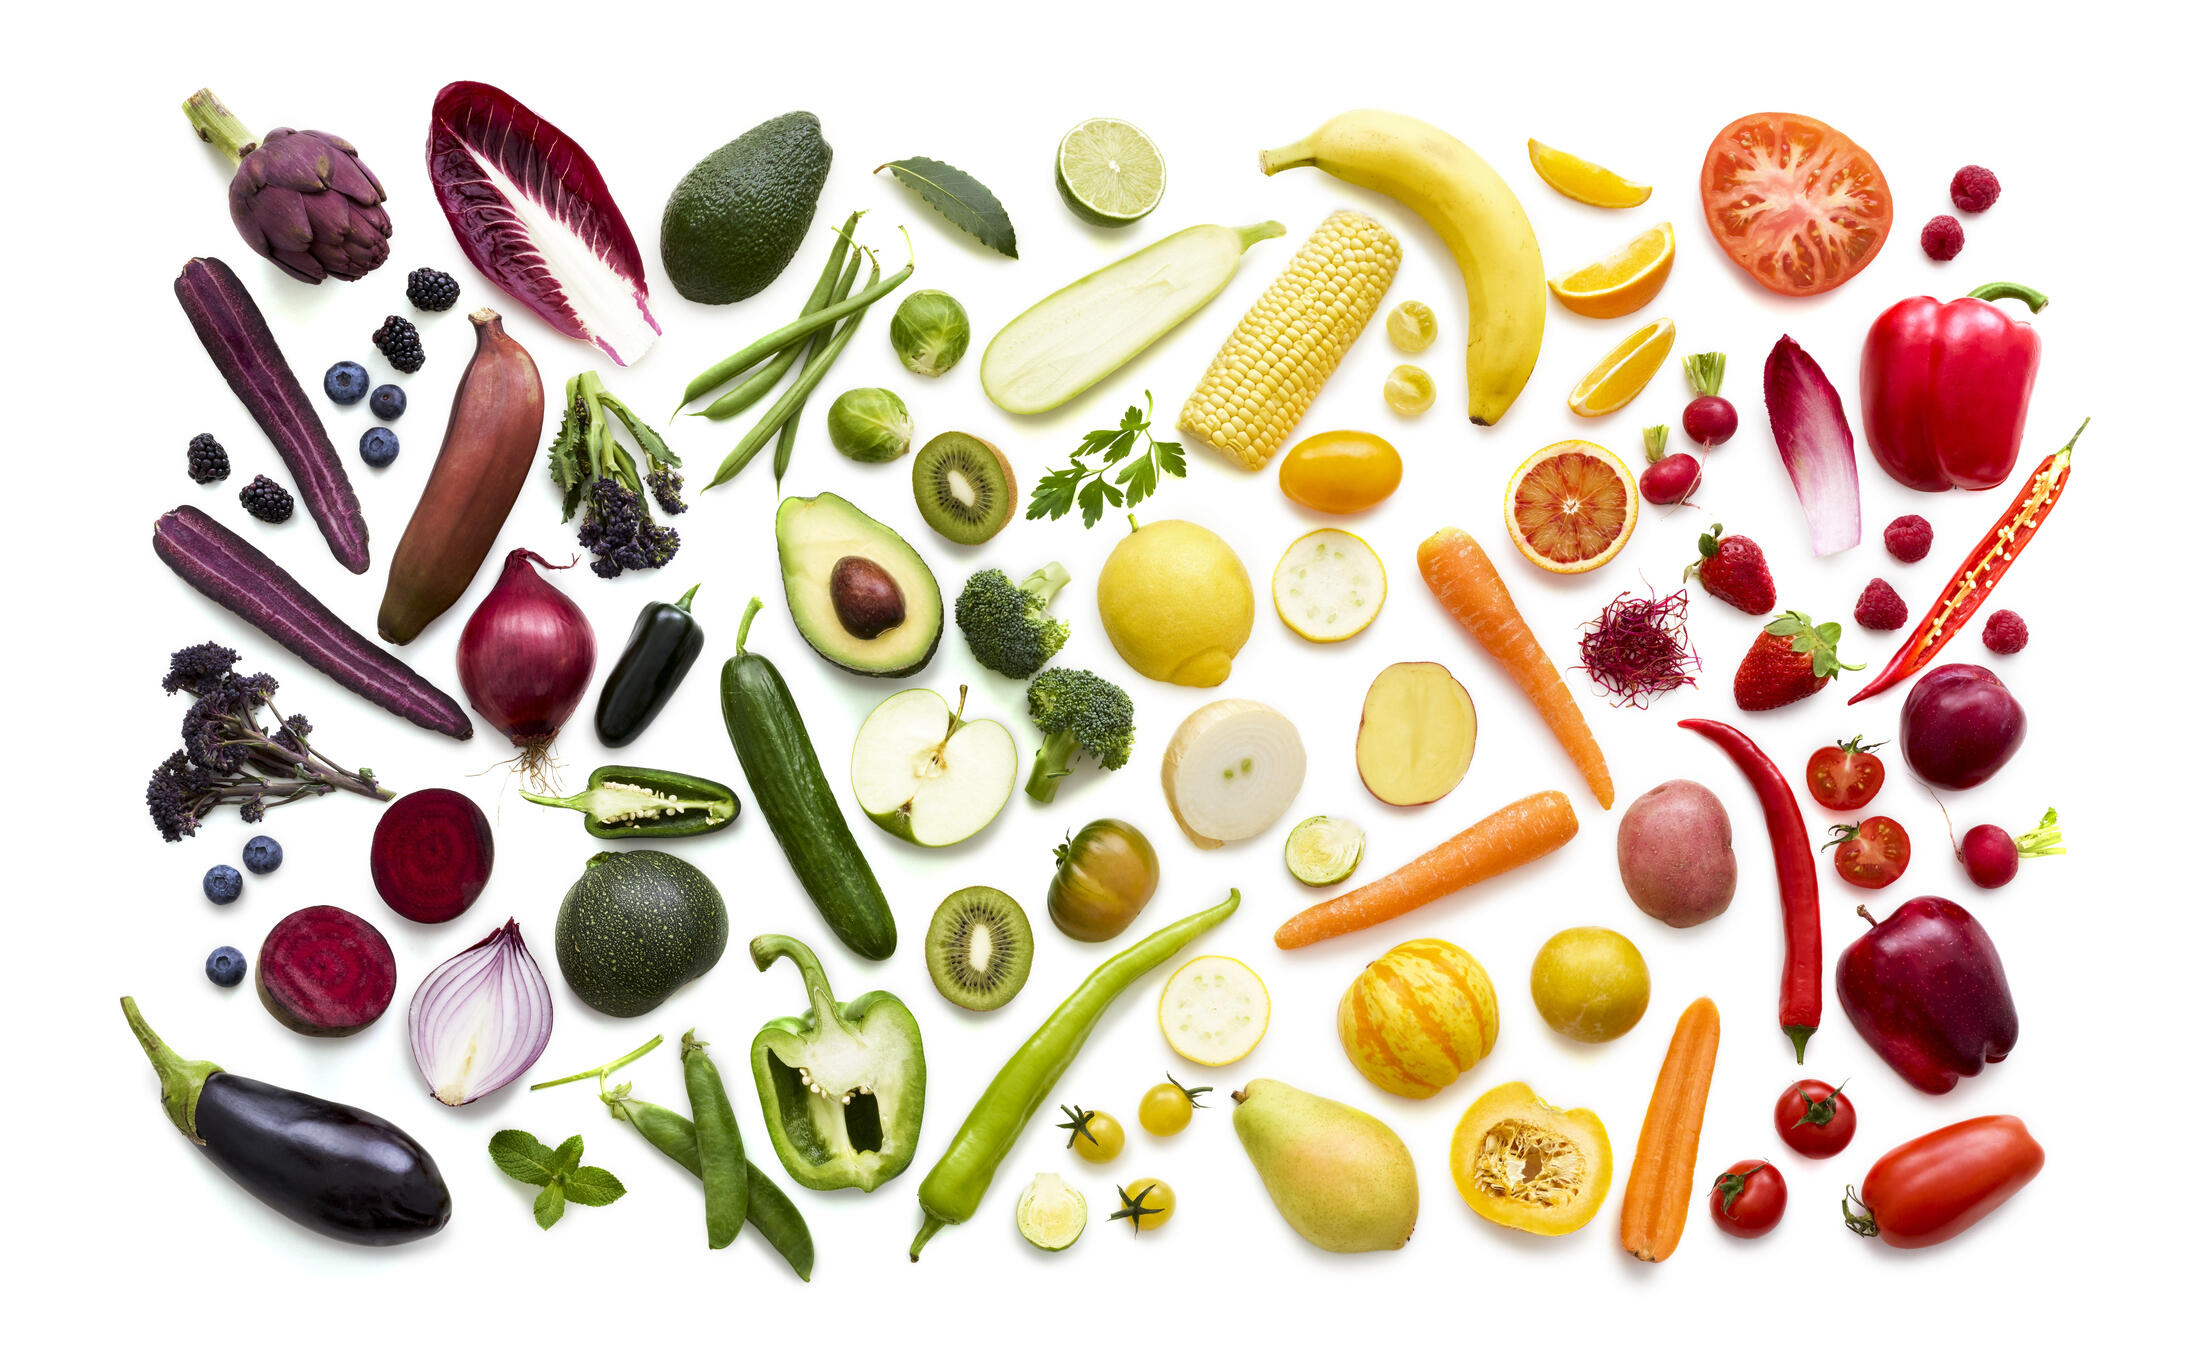 colorful fruits and vegetables on a white backround arranged in the order of the rainbow